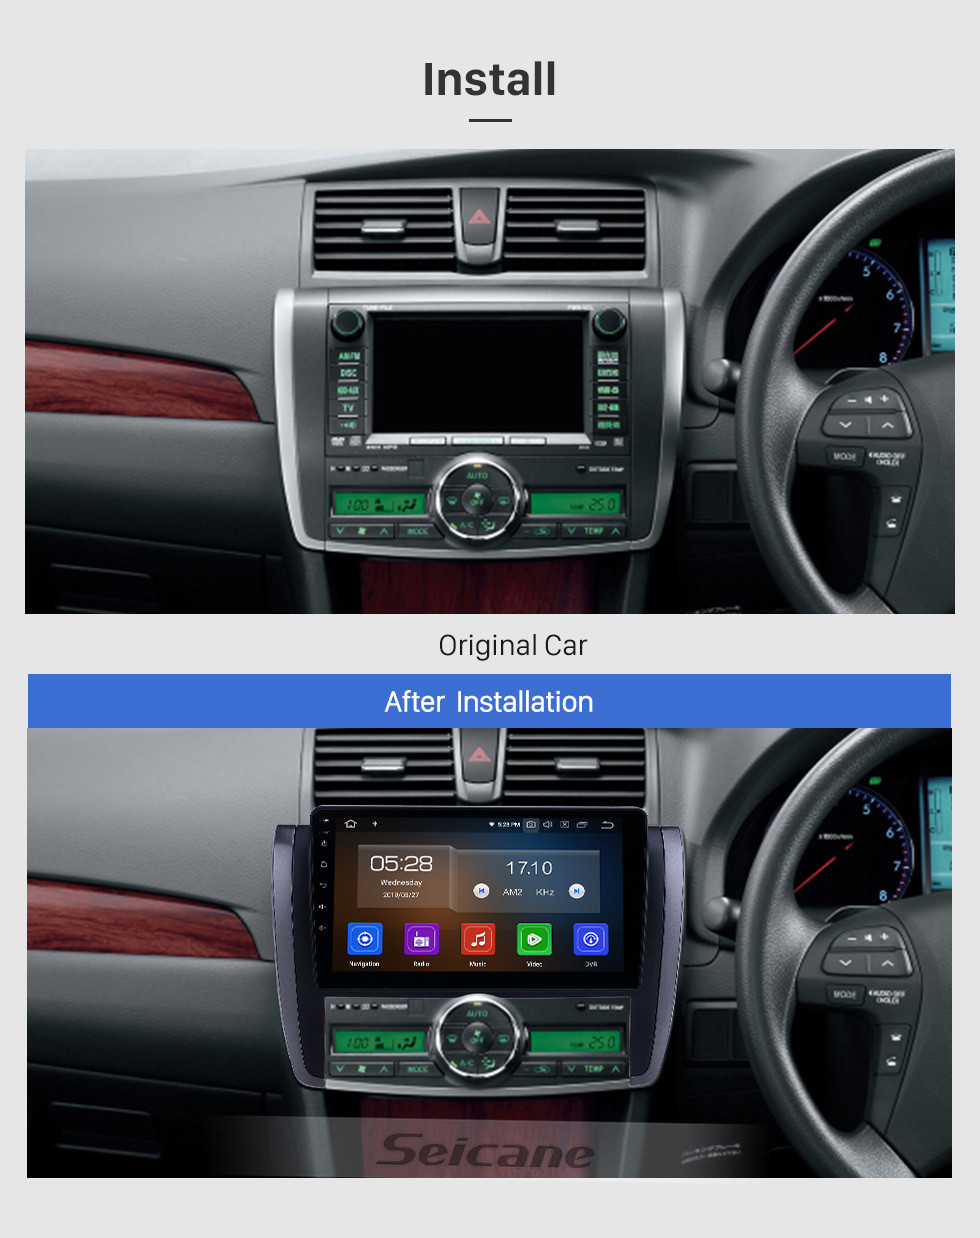 Seicane OEM 9 inch Android 10.0 Radio for 2007-2015 Toyota Allion Bluetooth HD Touchscreen GPS Navigation Carplay support TPMS